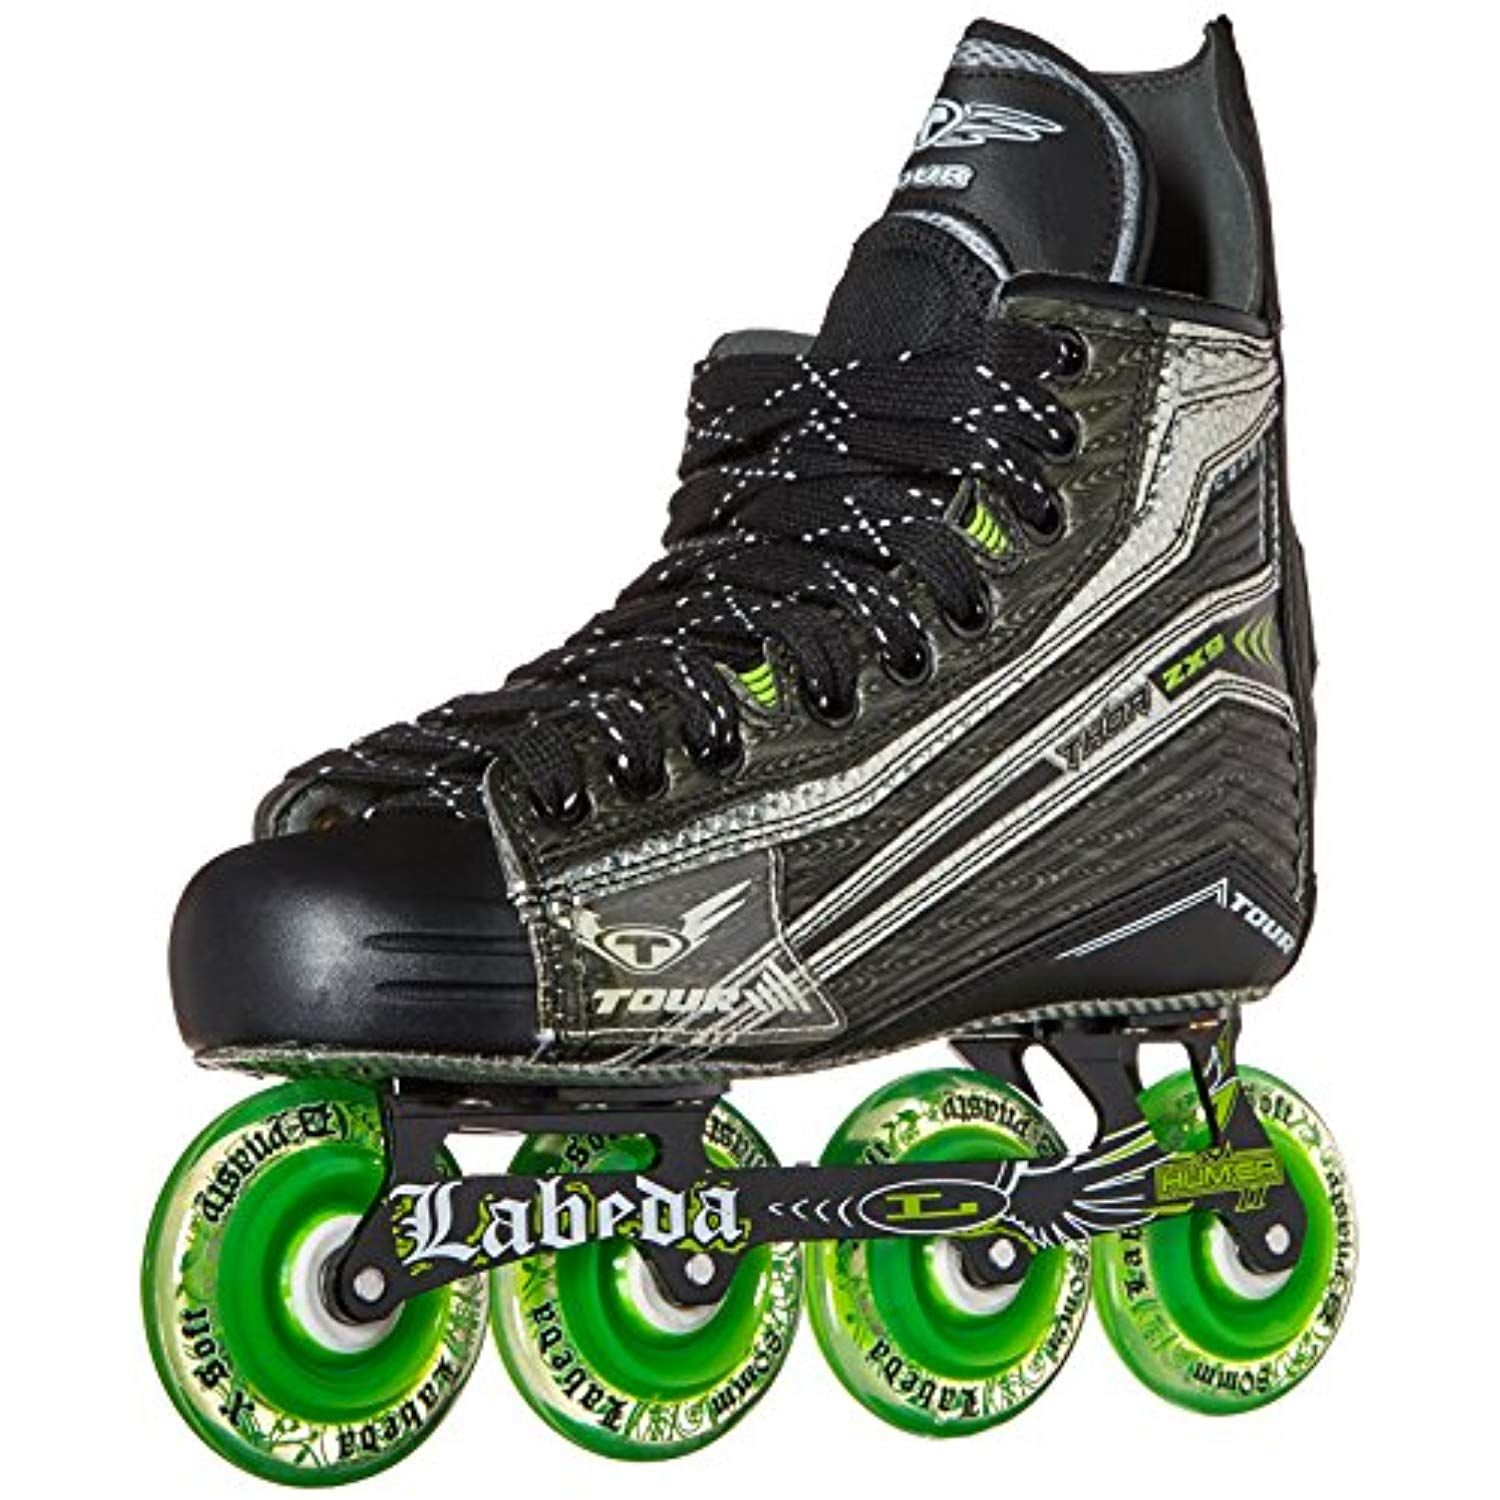 Tour Hockey Thor ZX9 Inline Hockey Skate Details can